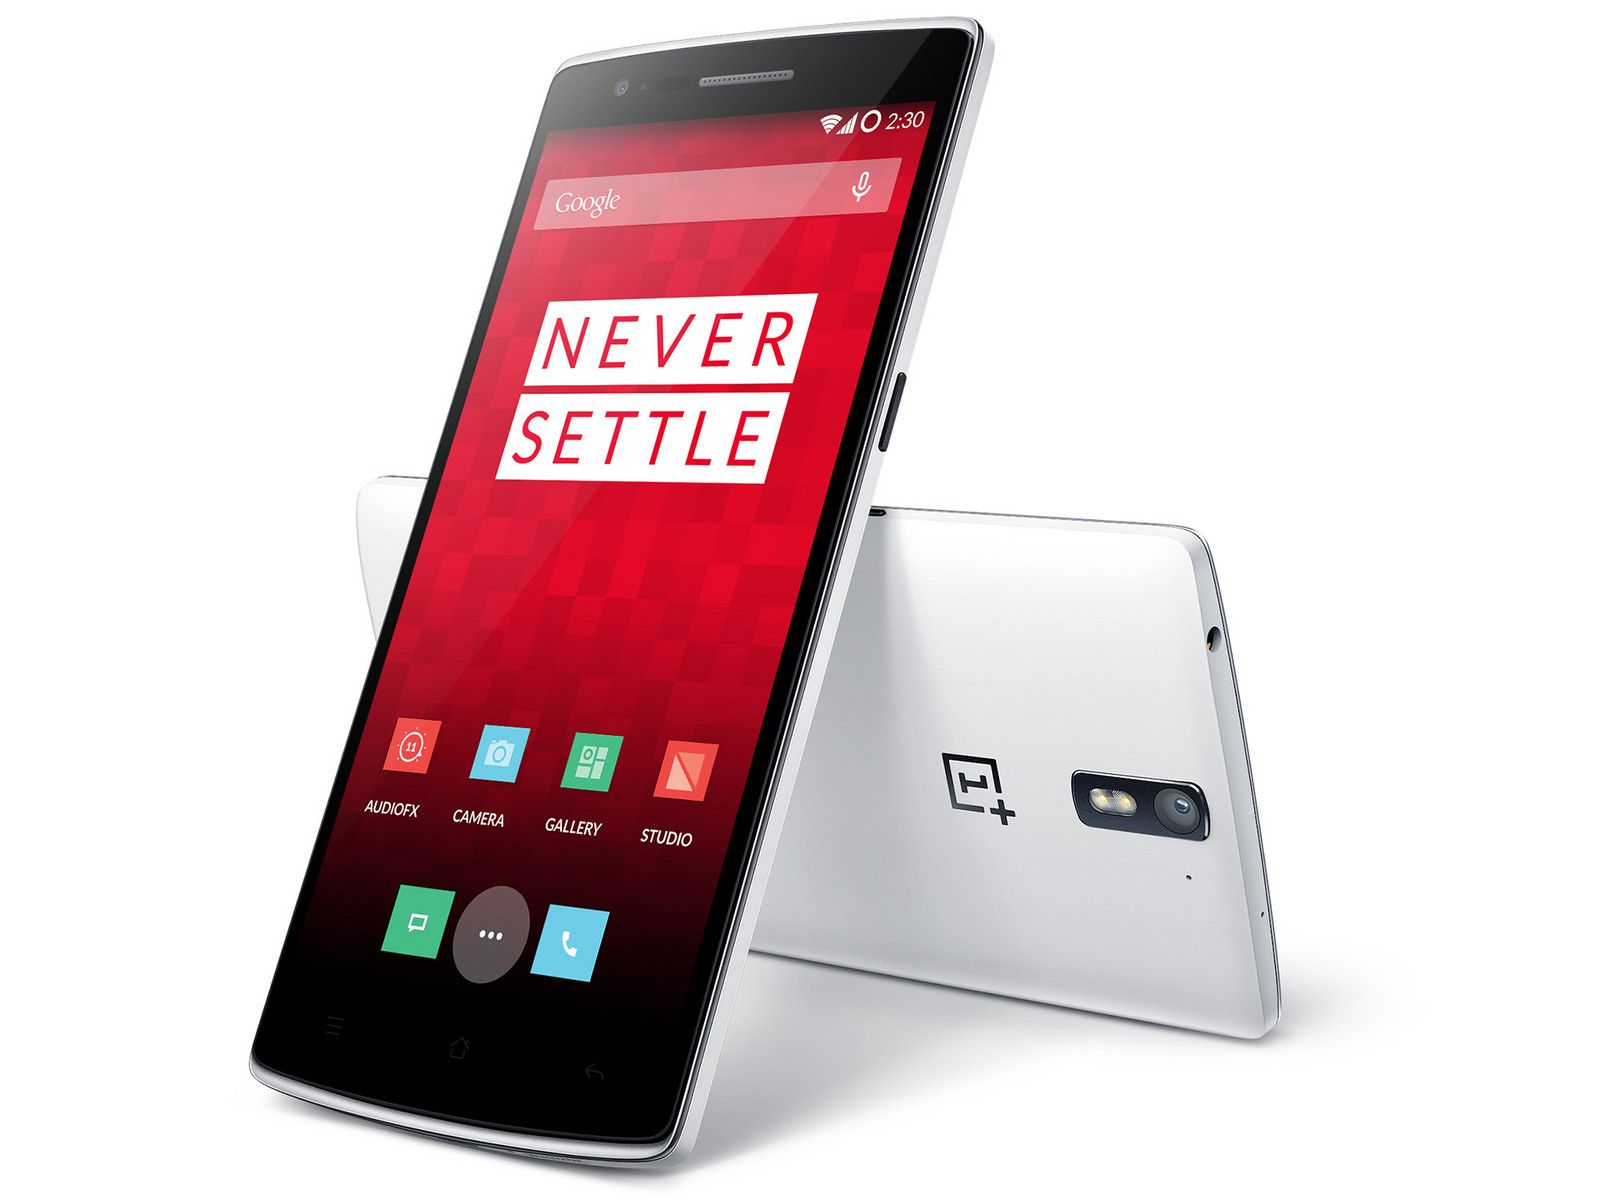 The Oneplus manager says: That is why we are investing in cheaper mobile phones